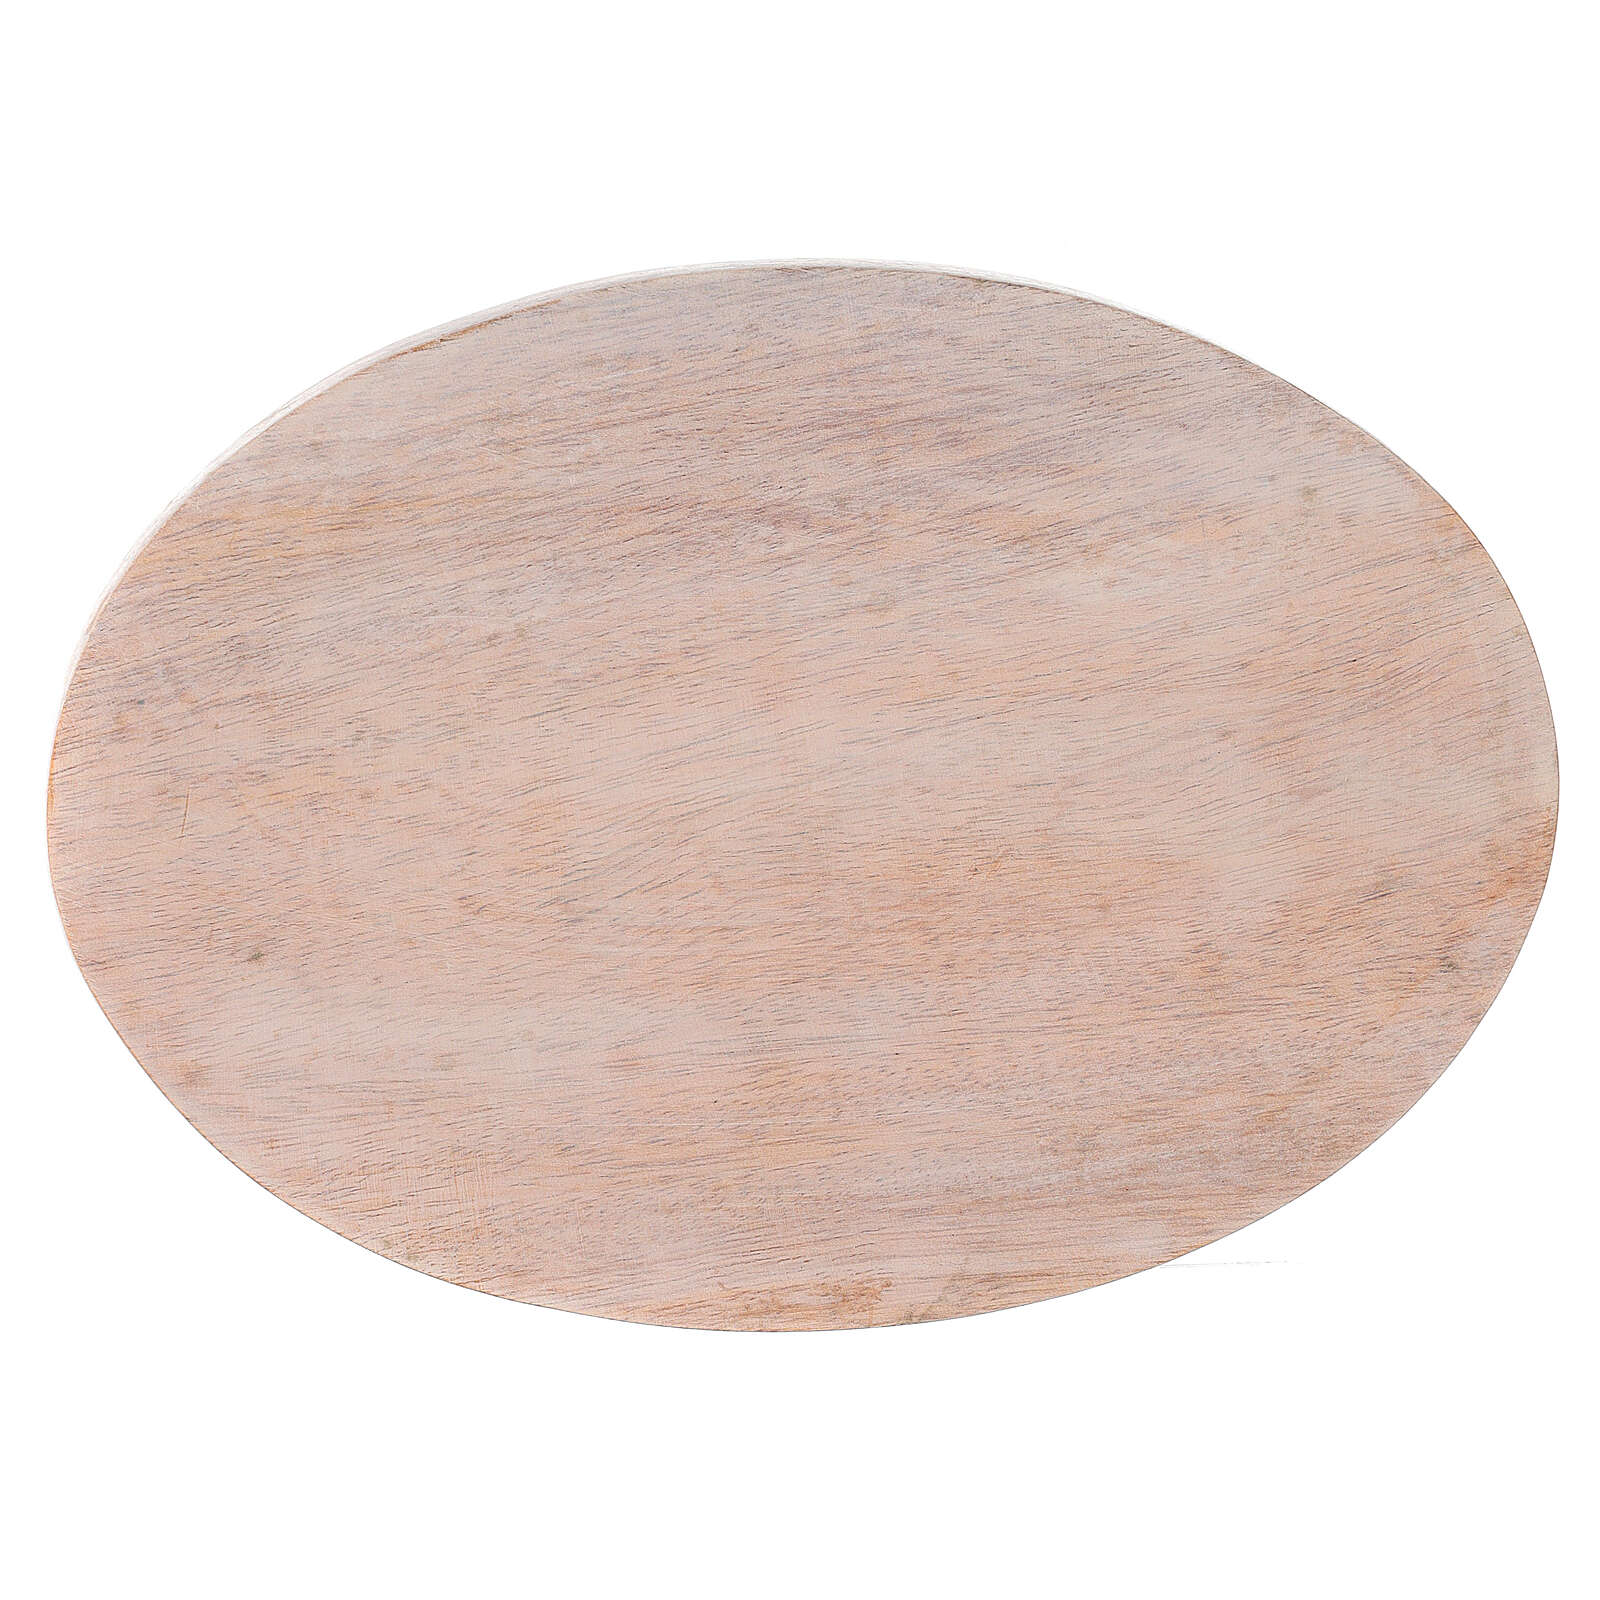 Pale mango wood plate for candles 6 3/4x4 3/4 in 3